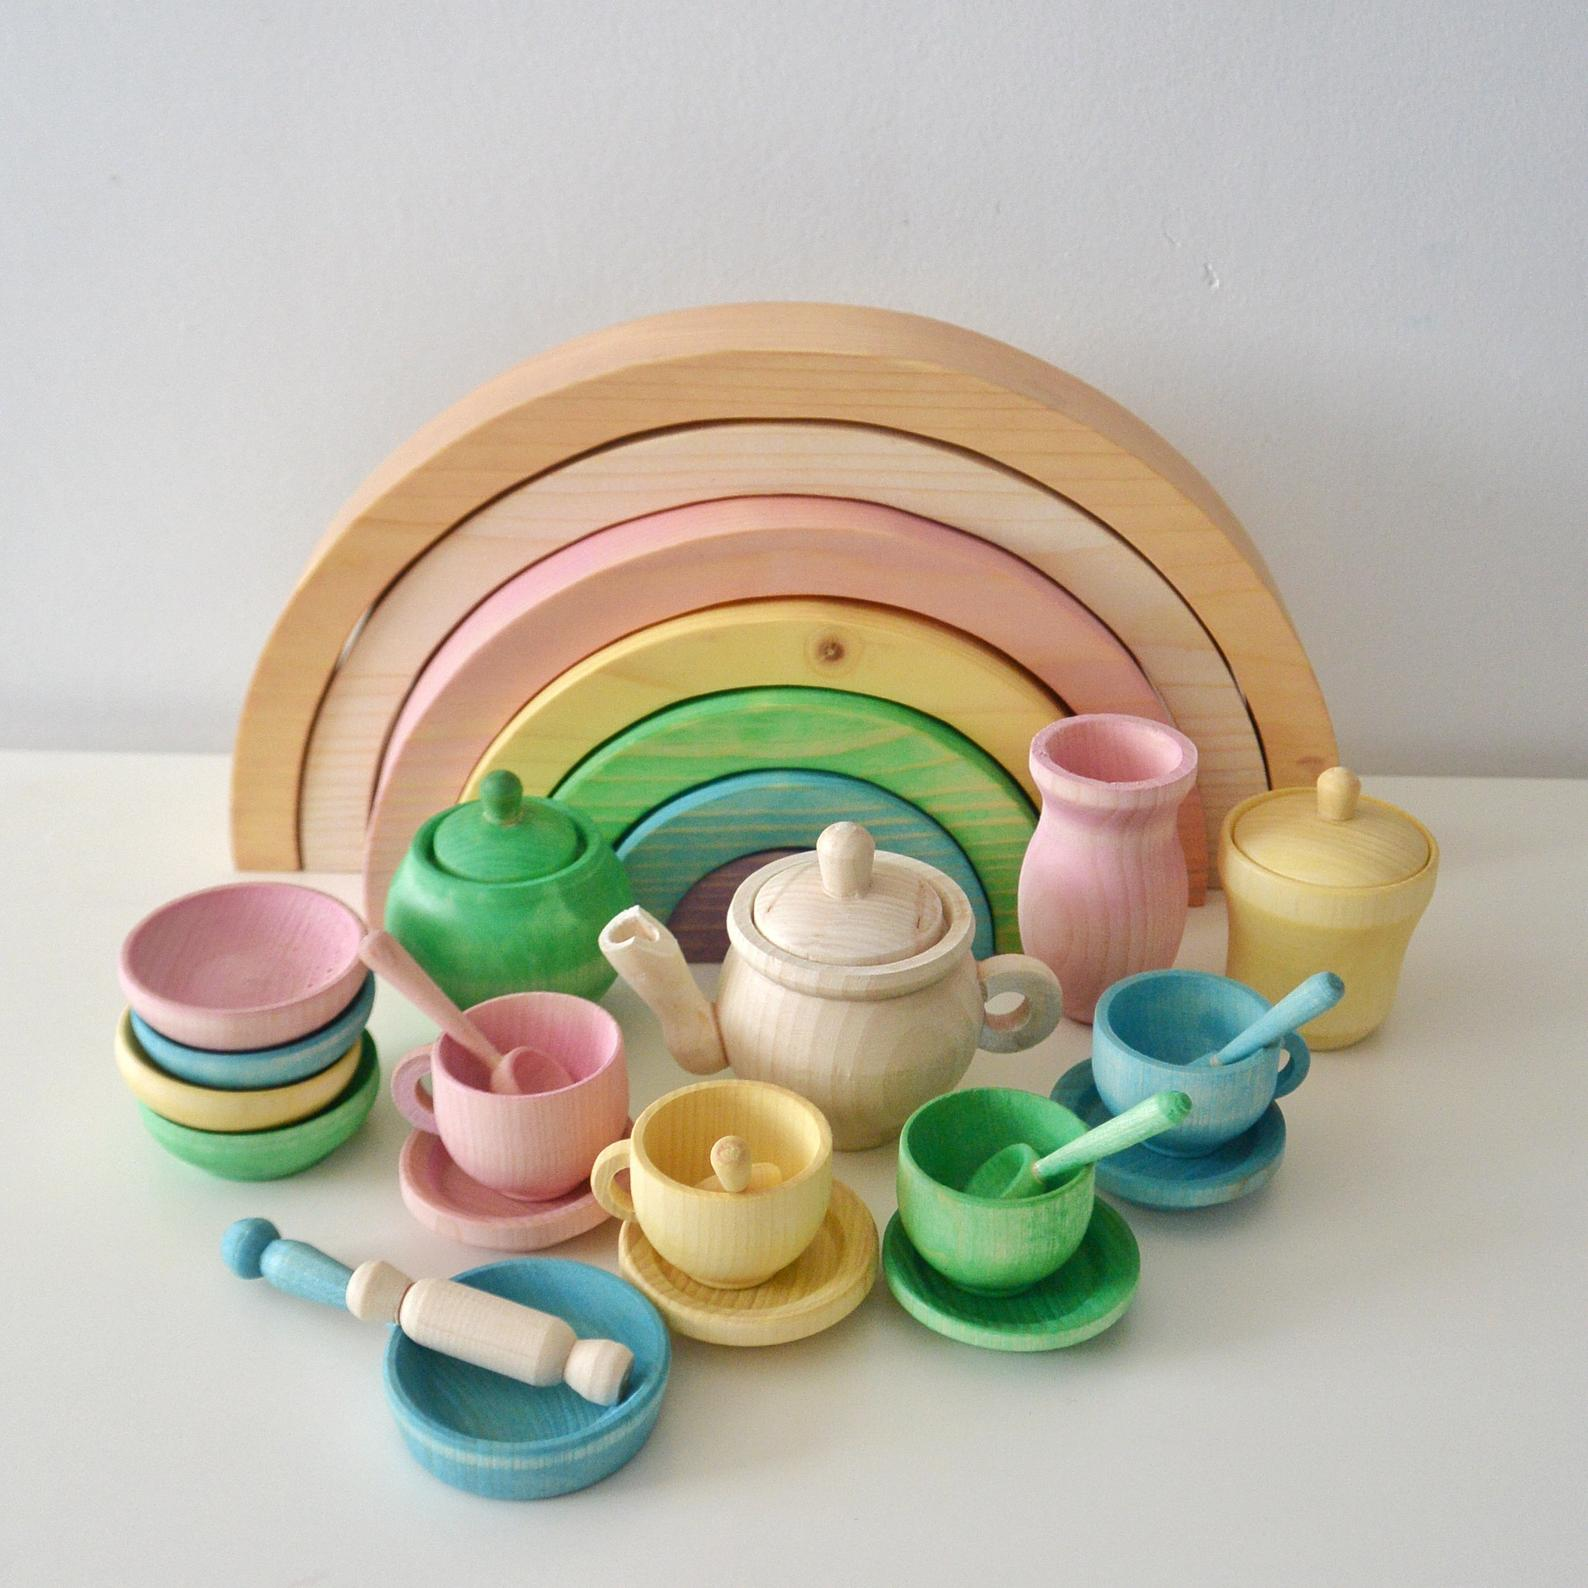 Dishes set Wood Toy Toy kitchen Pretend play Rainbow stacker Wooden tunnel Dishes Cookware Set Spring 22 pcs + Rainbow 7 pcs